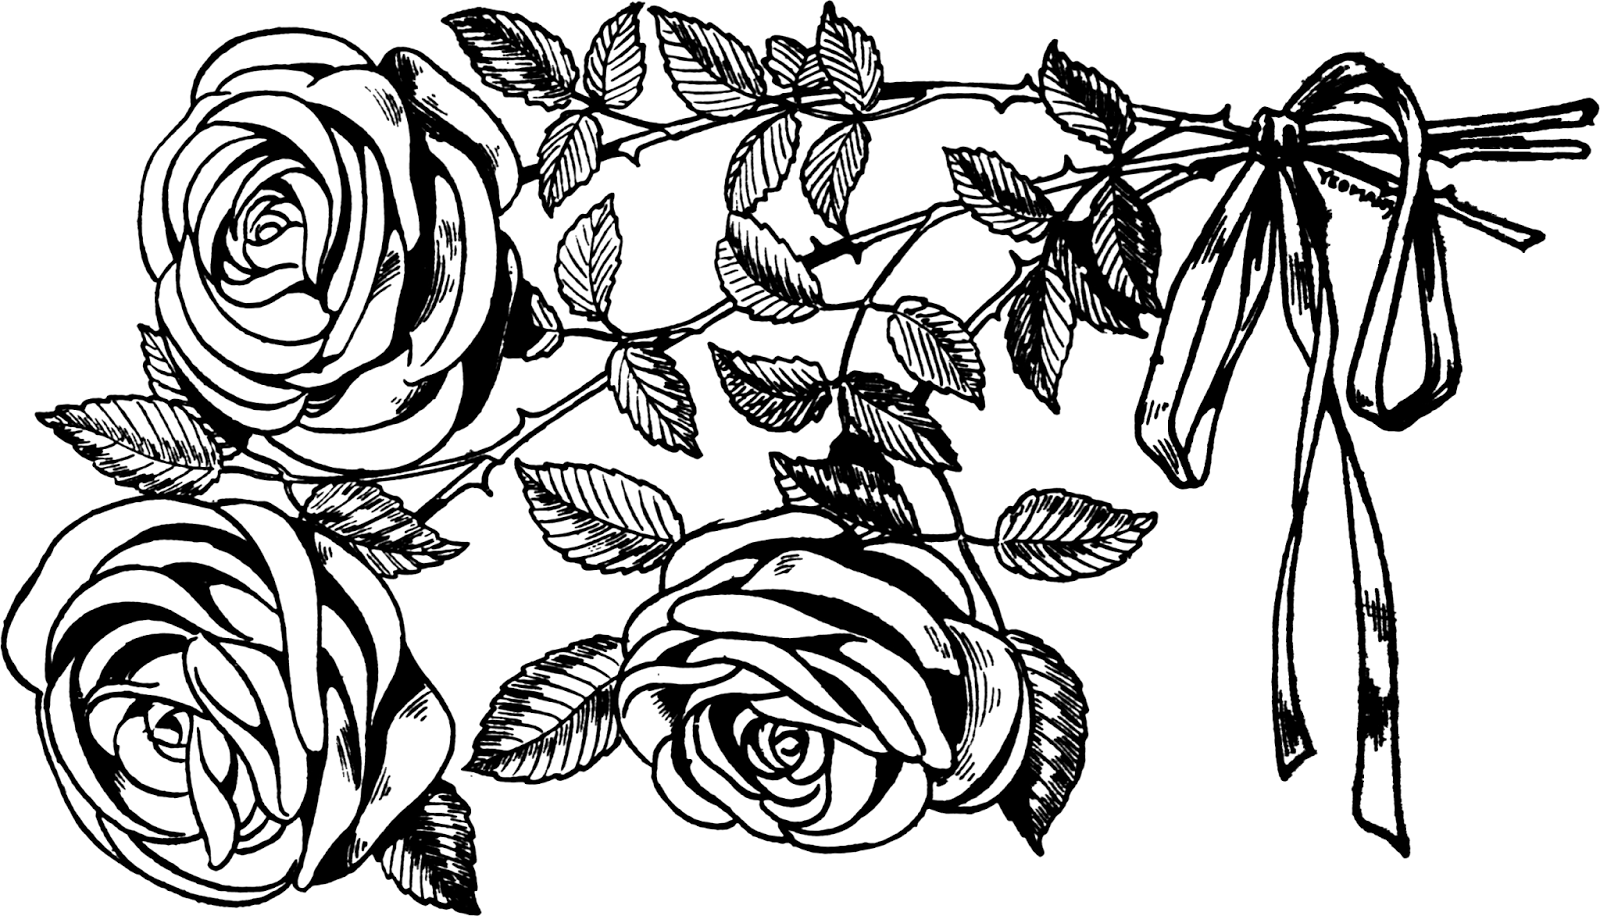 Rose losing petals clipart black and white banner library stock Vintage Snips and Clips: Black and White Illustration of ... banner library stock